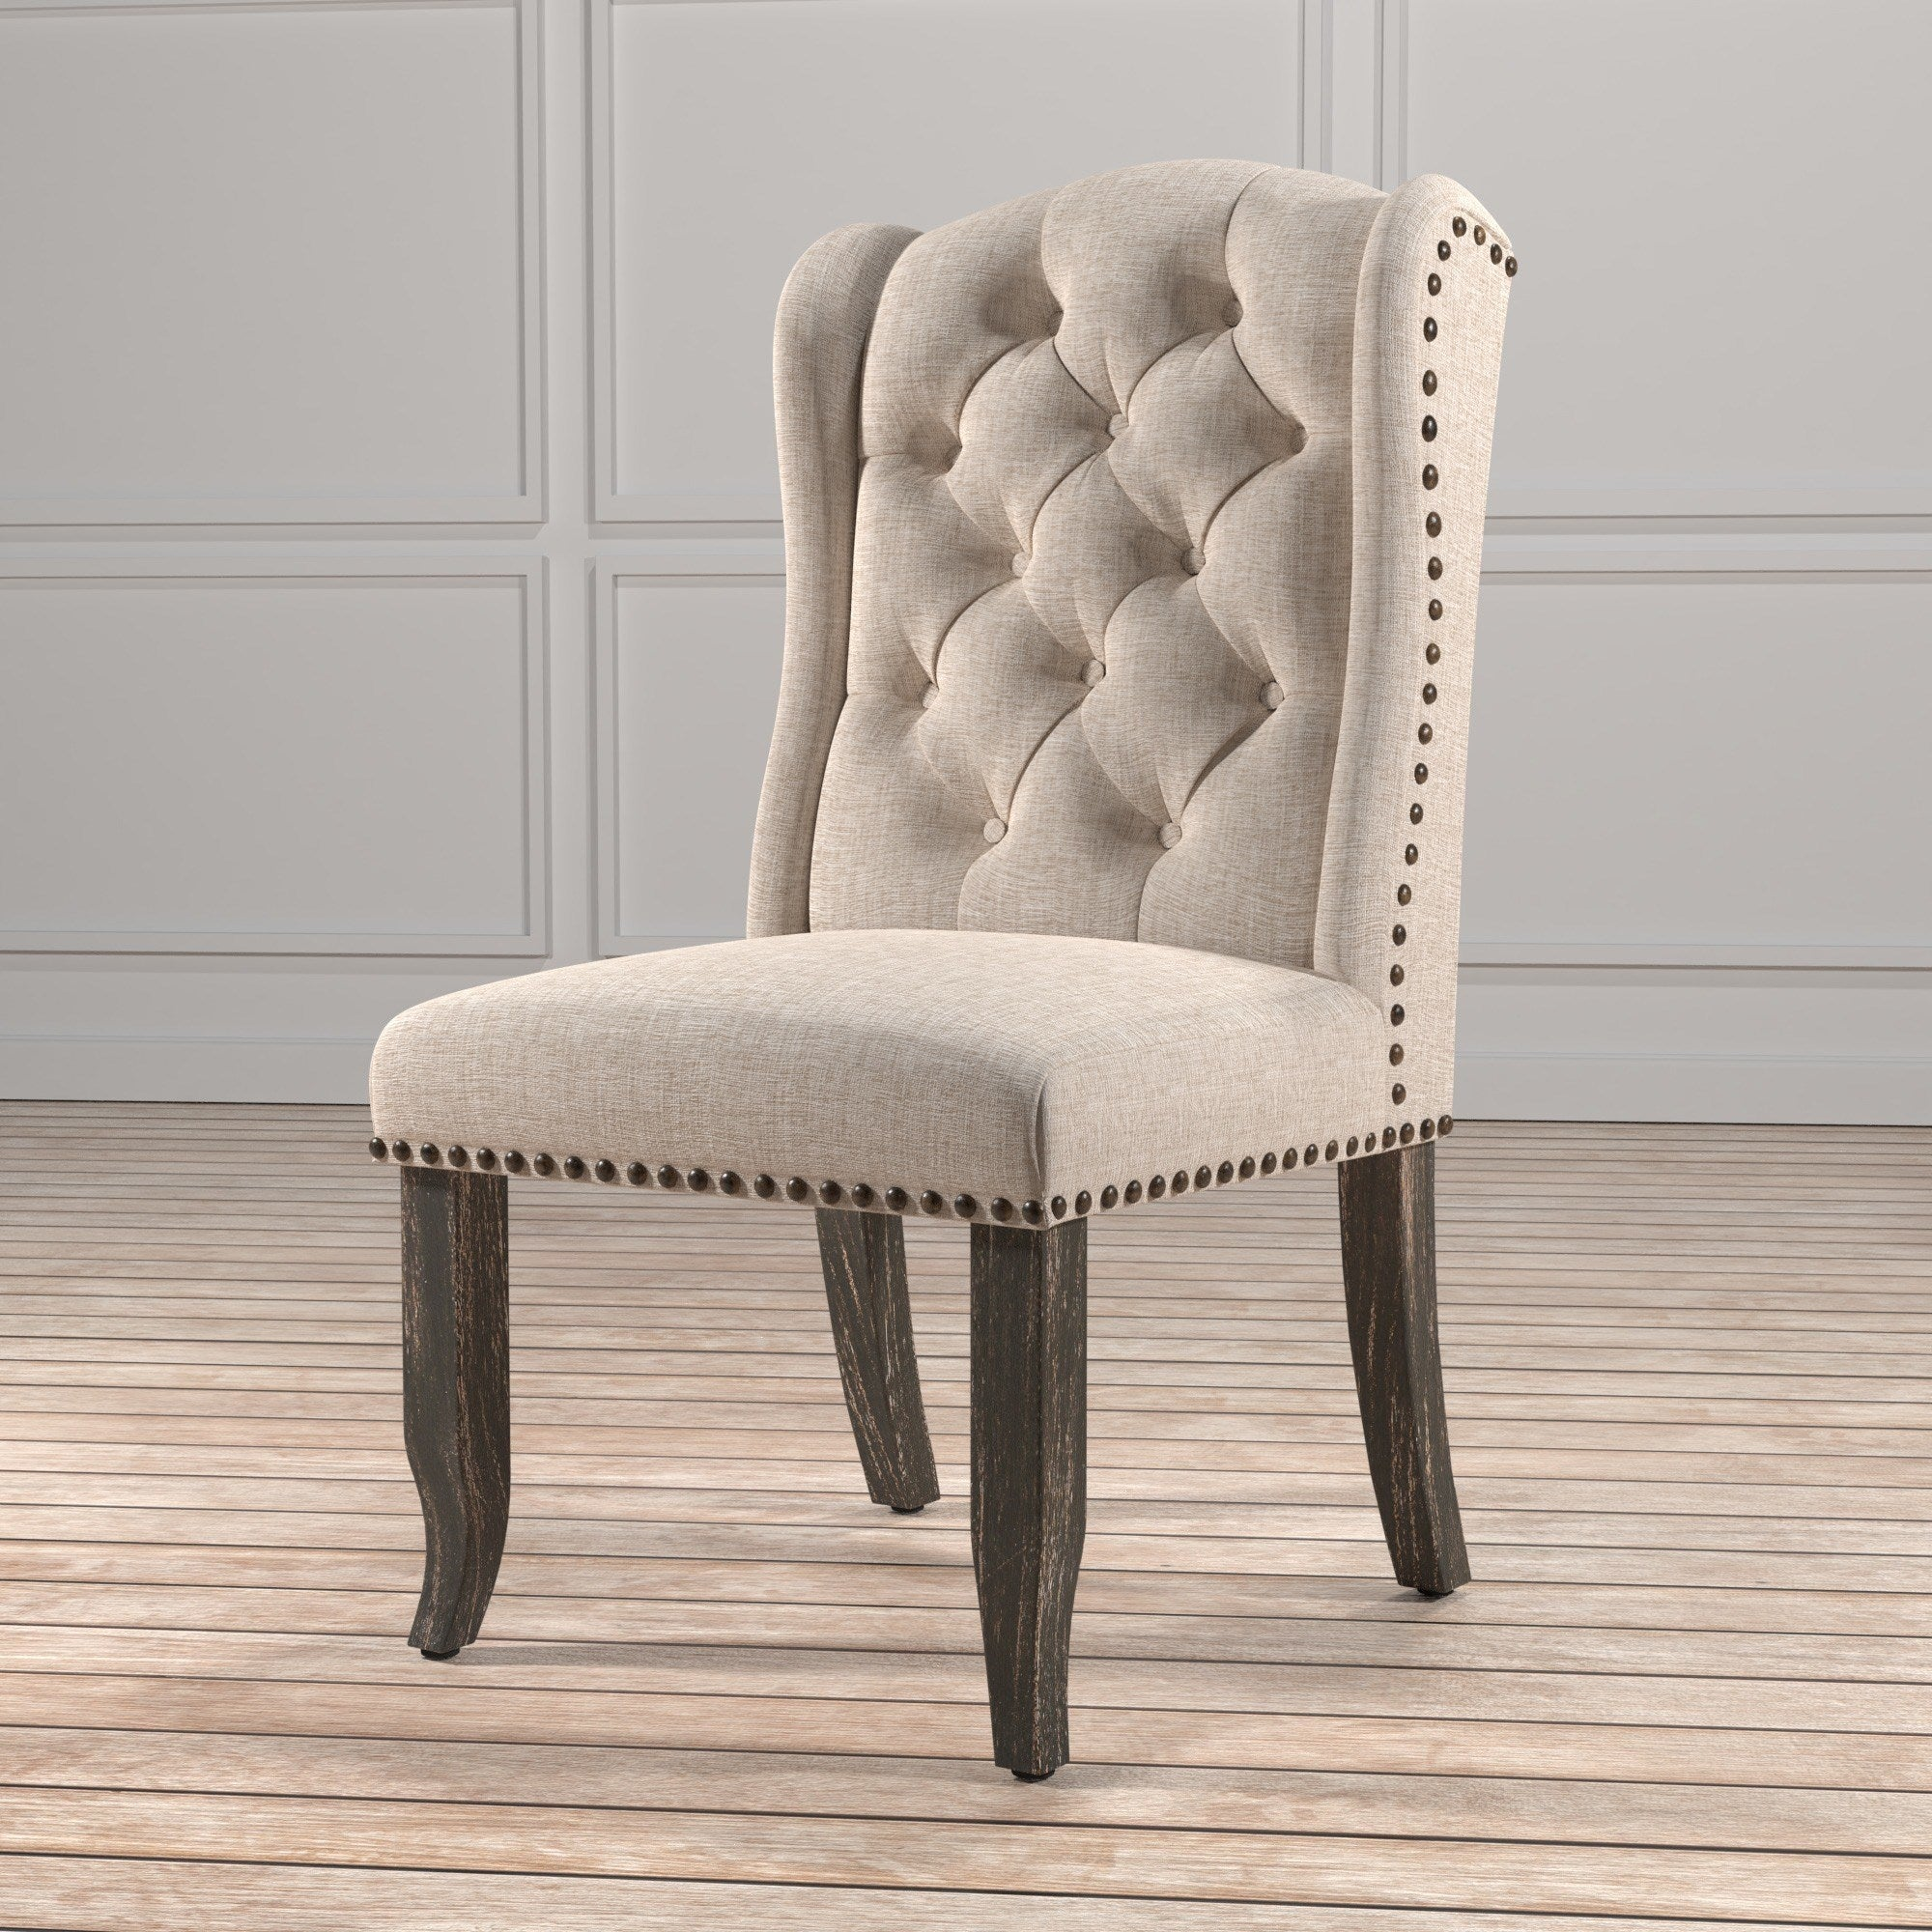 Tufted Wingback Dining Chair & Tufted Wingback Dining Chair | Handy